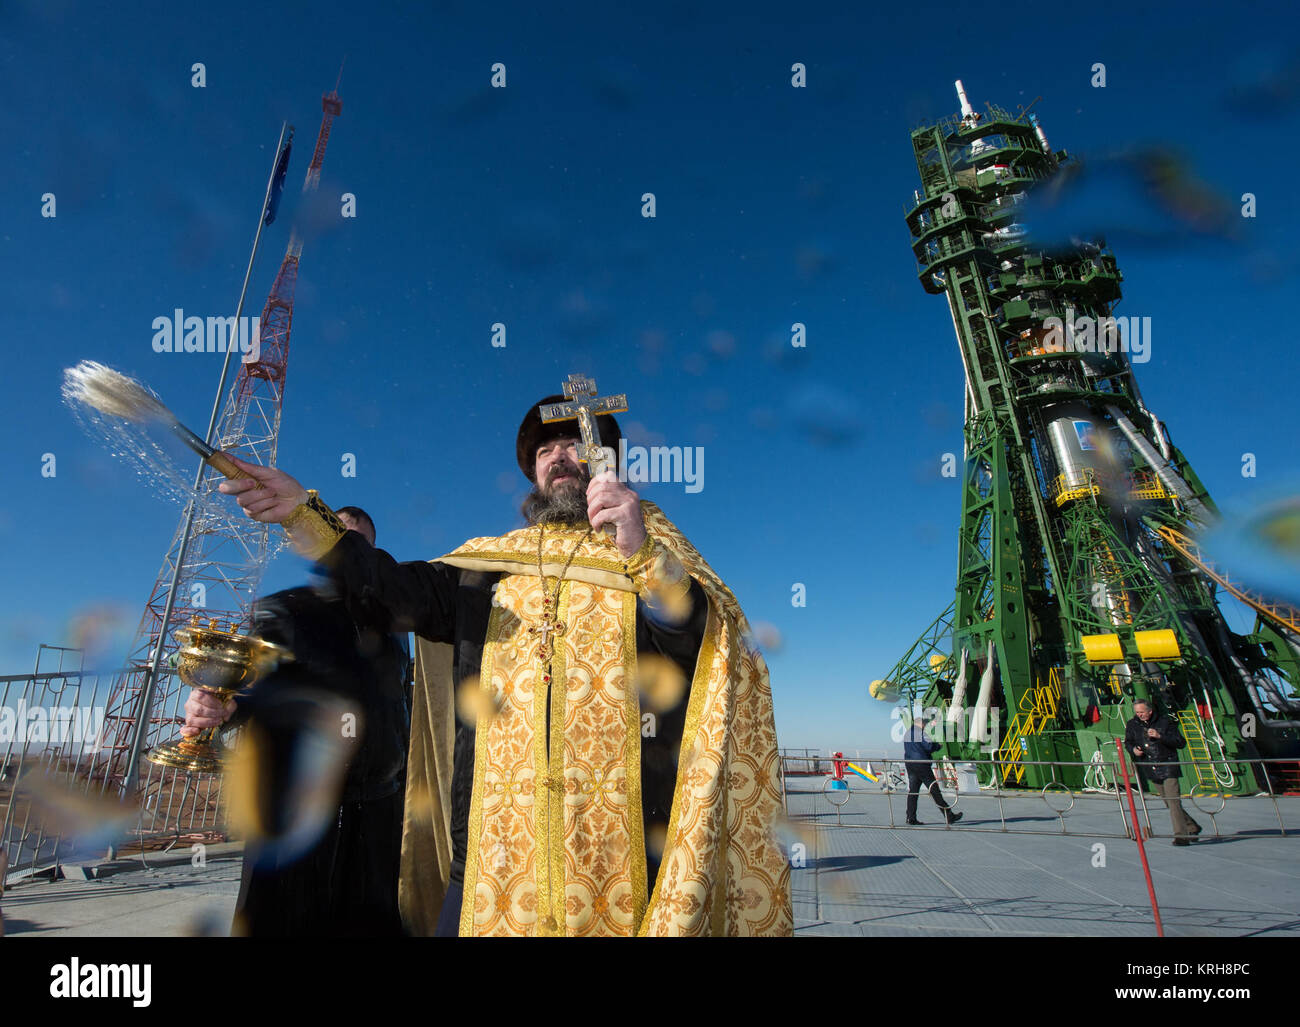 An Orthodox priest blesses members of the media at the Baikonur Cosmodrome launch pad on Saturday, Nov. 22, 2014, Stock Photo